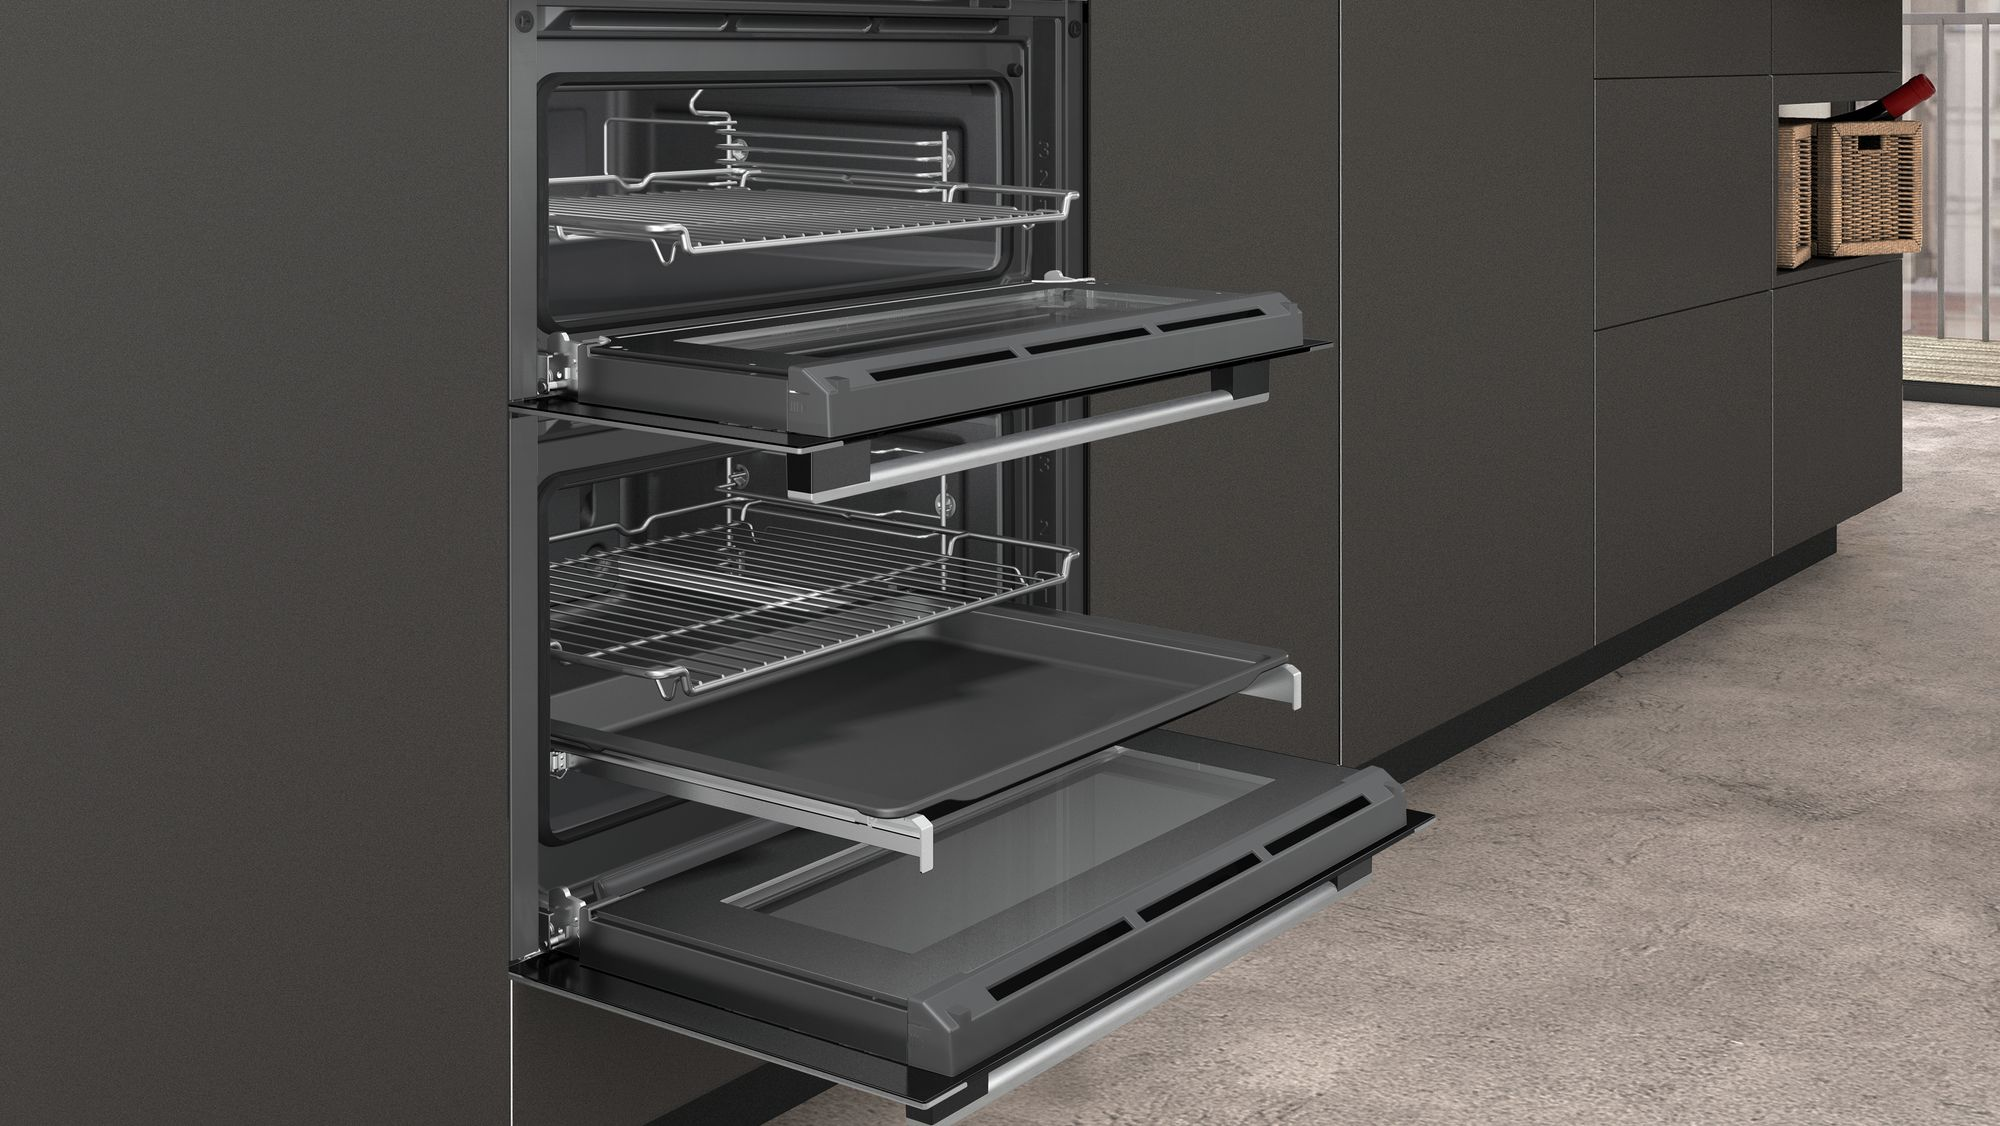 Neff J1ace4hn0b Built Under Double Oven With Catalytic